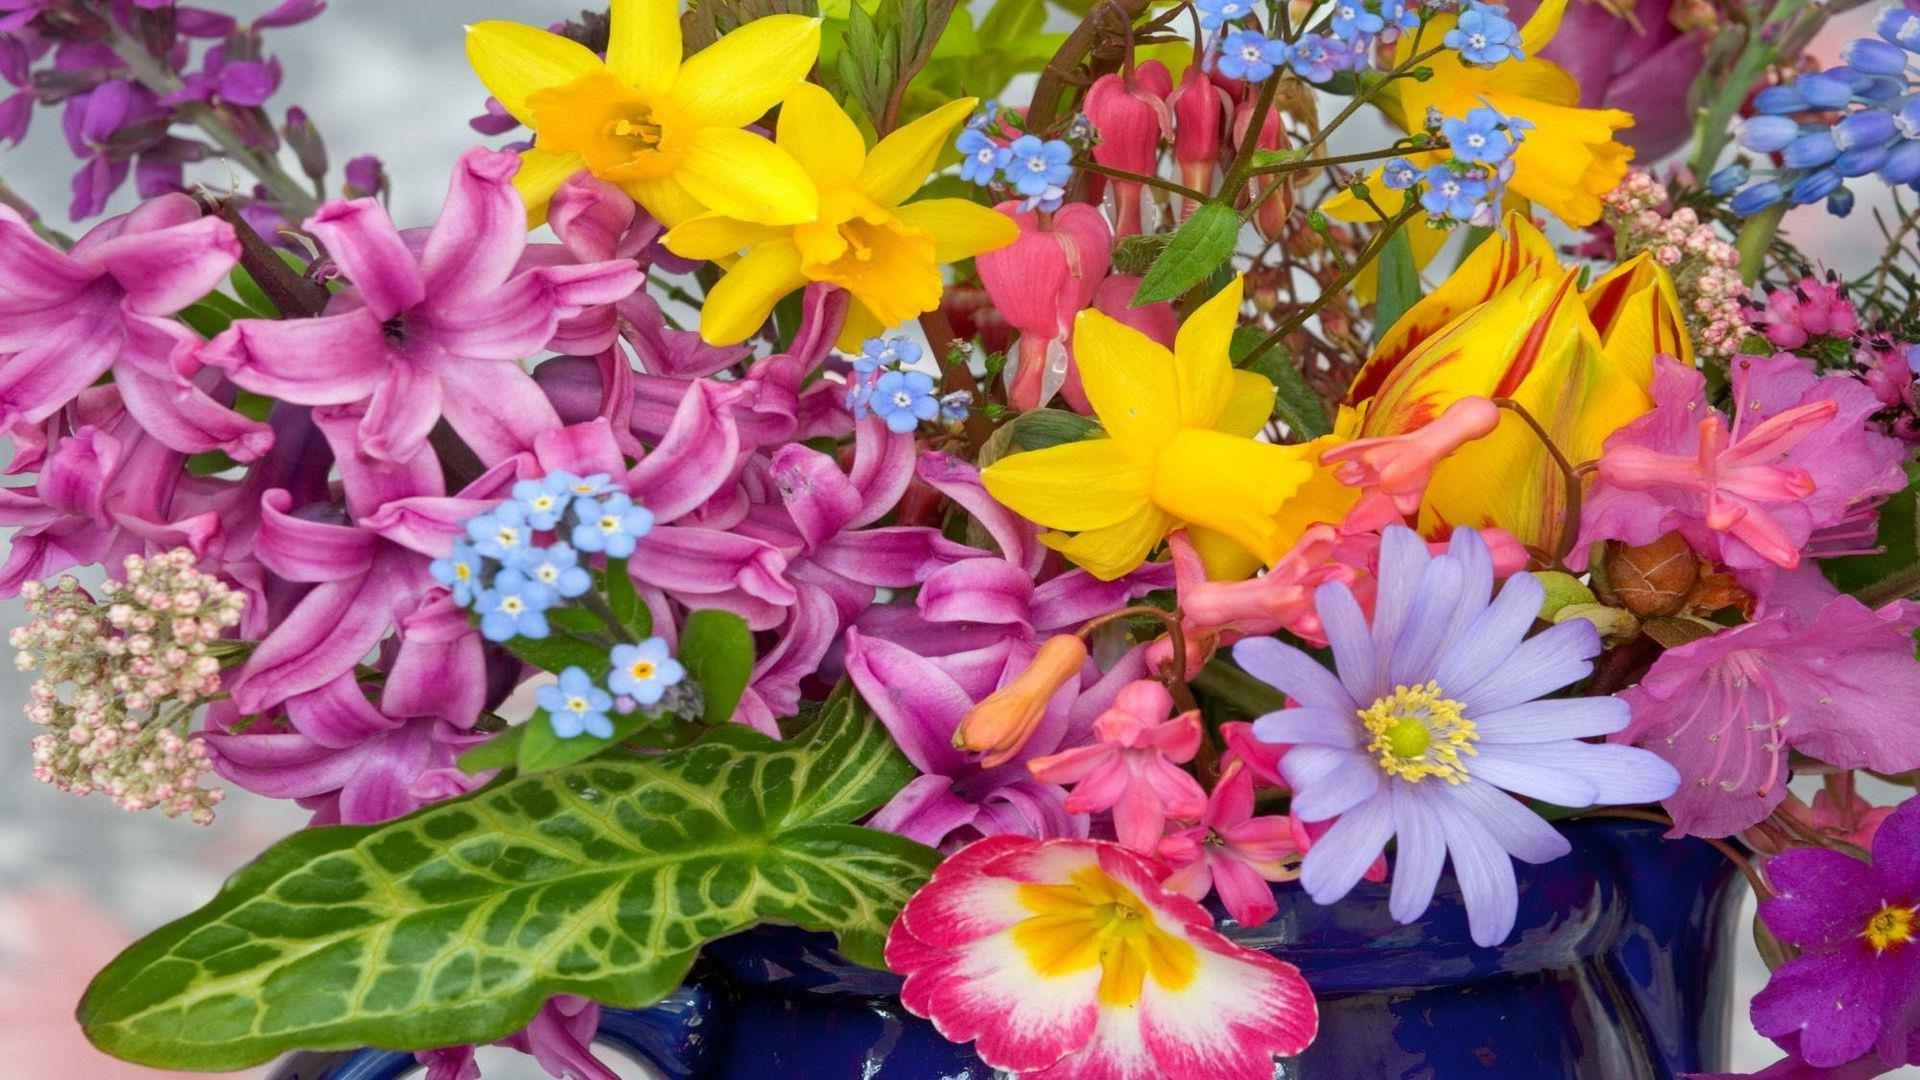 Colorful Flowers Wallpapers - Wallpaper Cave